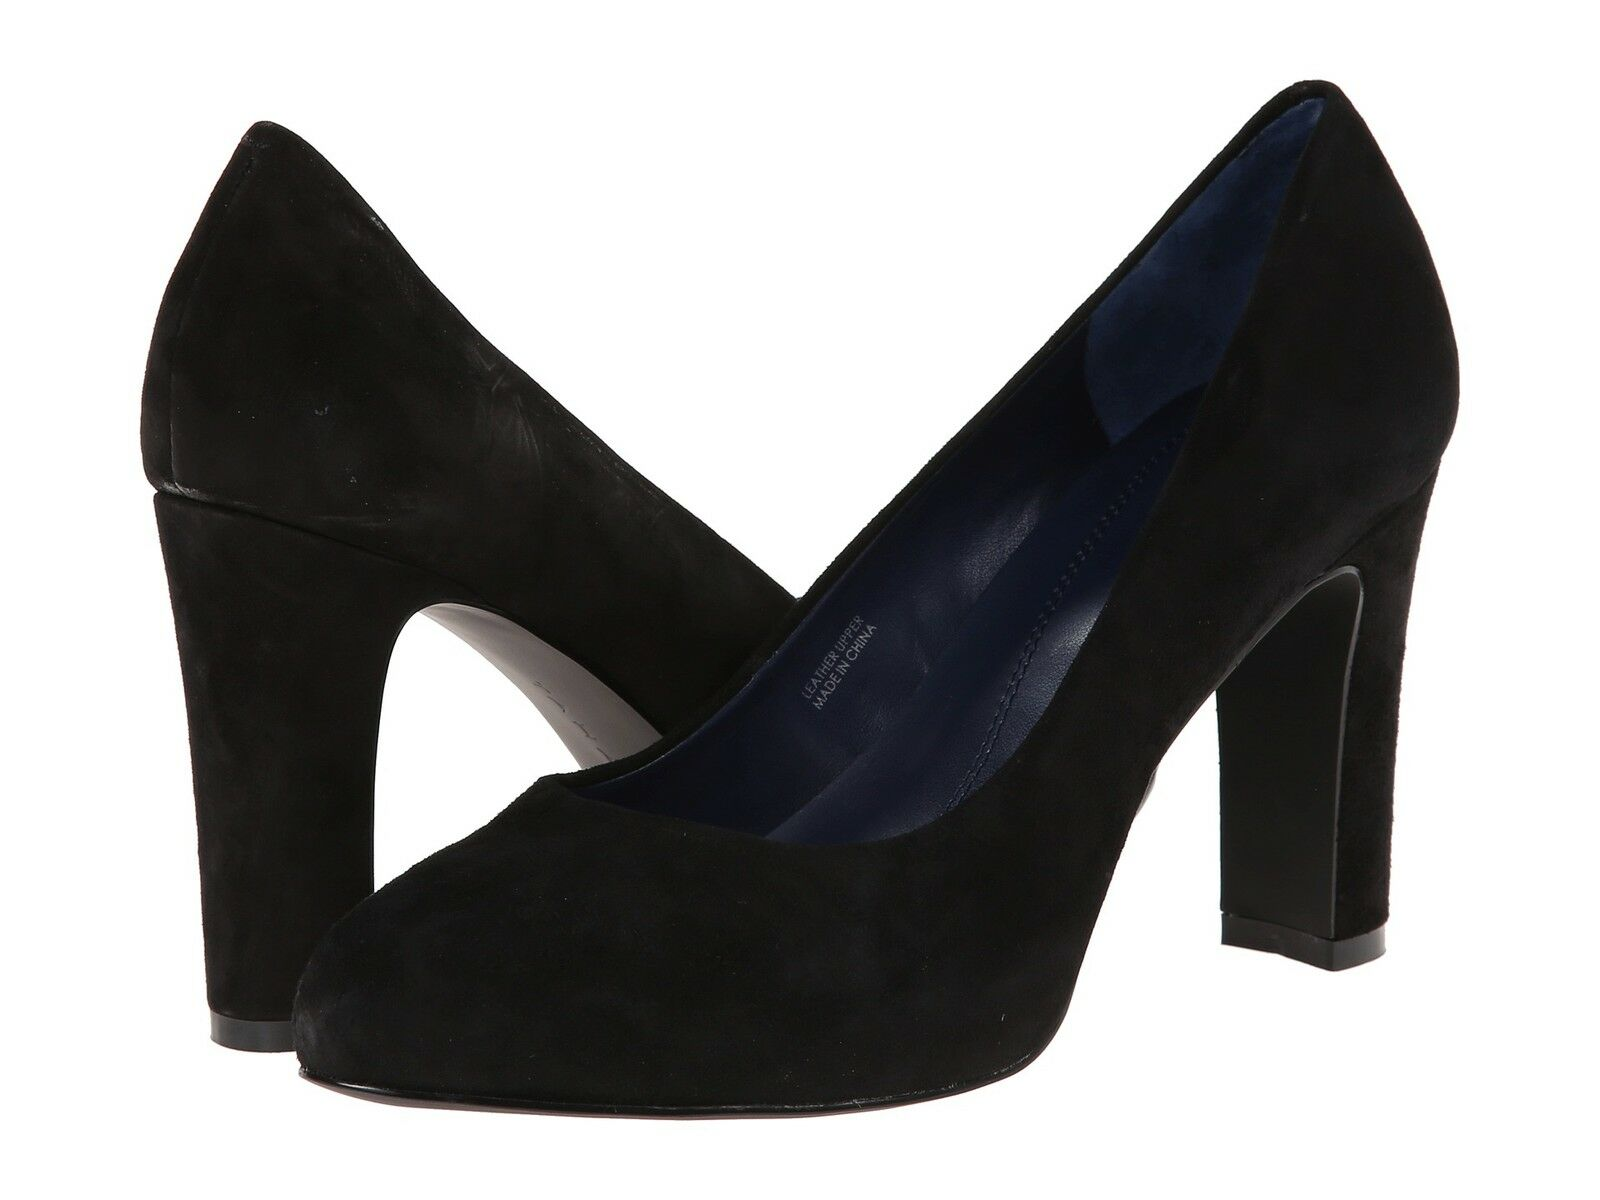 TAHARI TA DOLLY BLACK SUEDE CLASSIC PUMP WOMEN Schuhe MULTISIZE